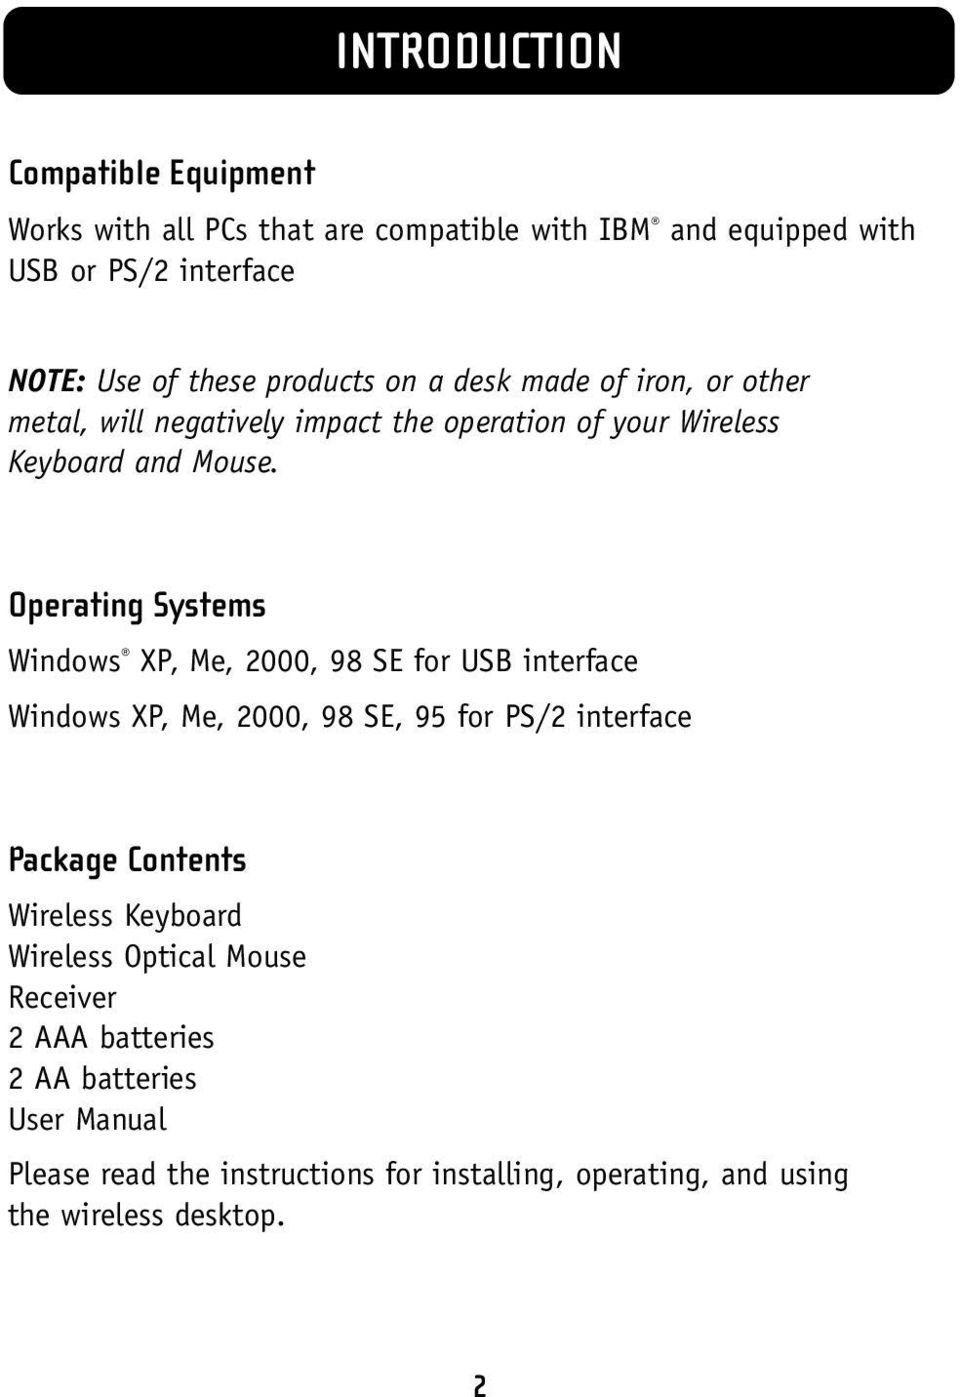 Operating Systems Windows XP, Me, 2000, 98 SE for USB interface Windows XP, Me, 2000, 98 SE, 95 for PS/2 interface Package Contents Wireless